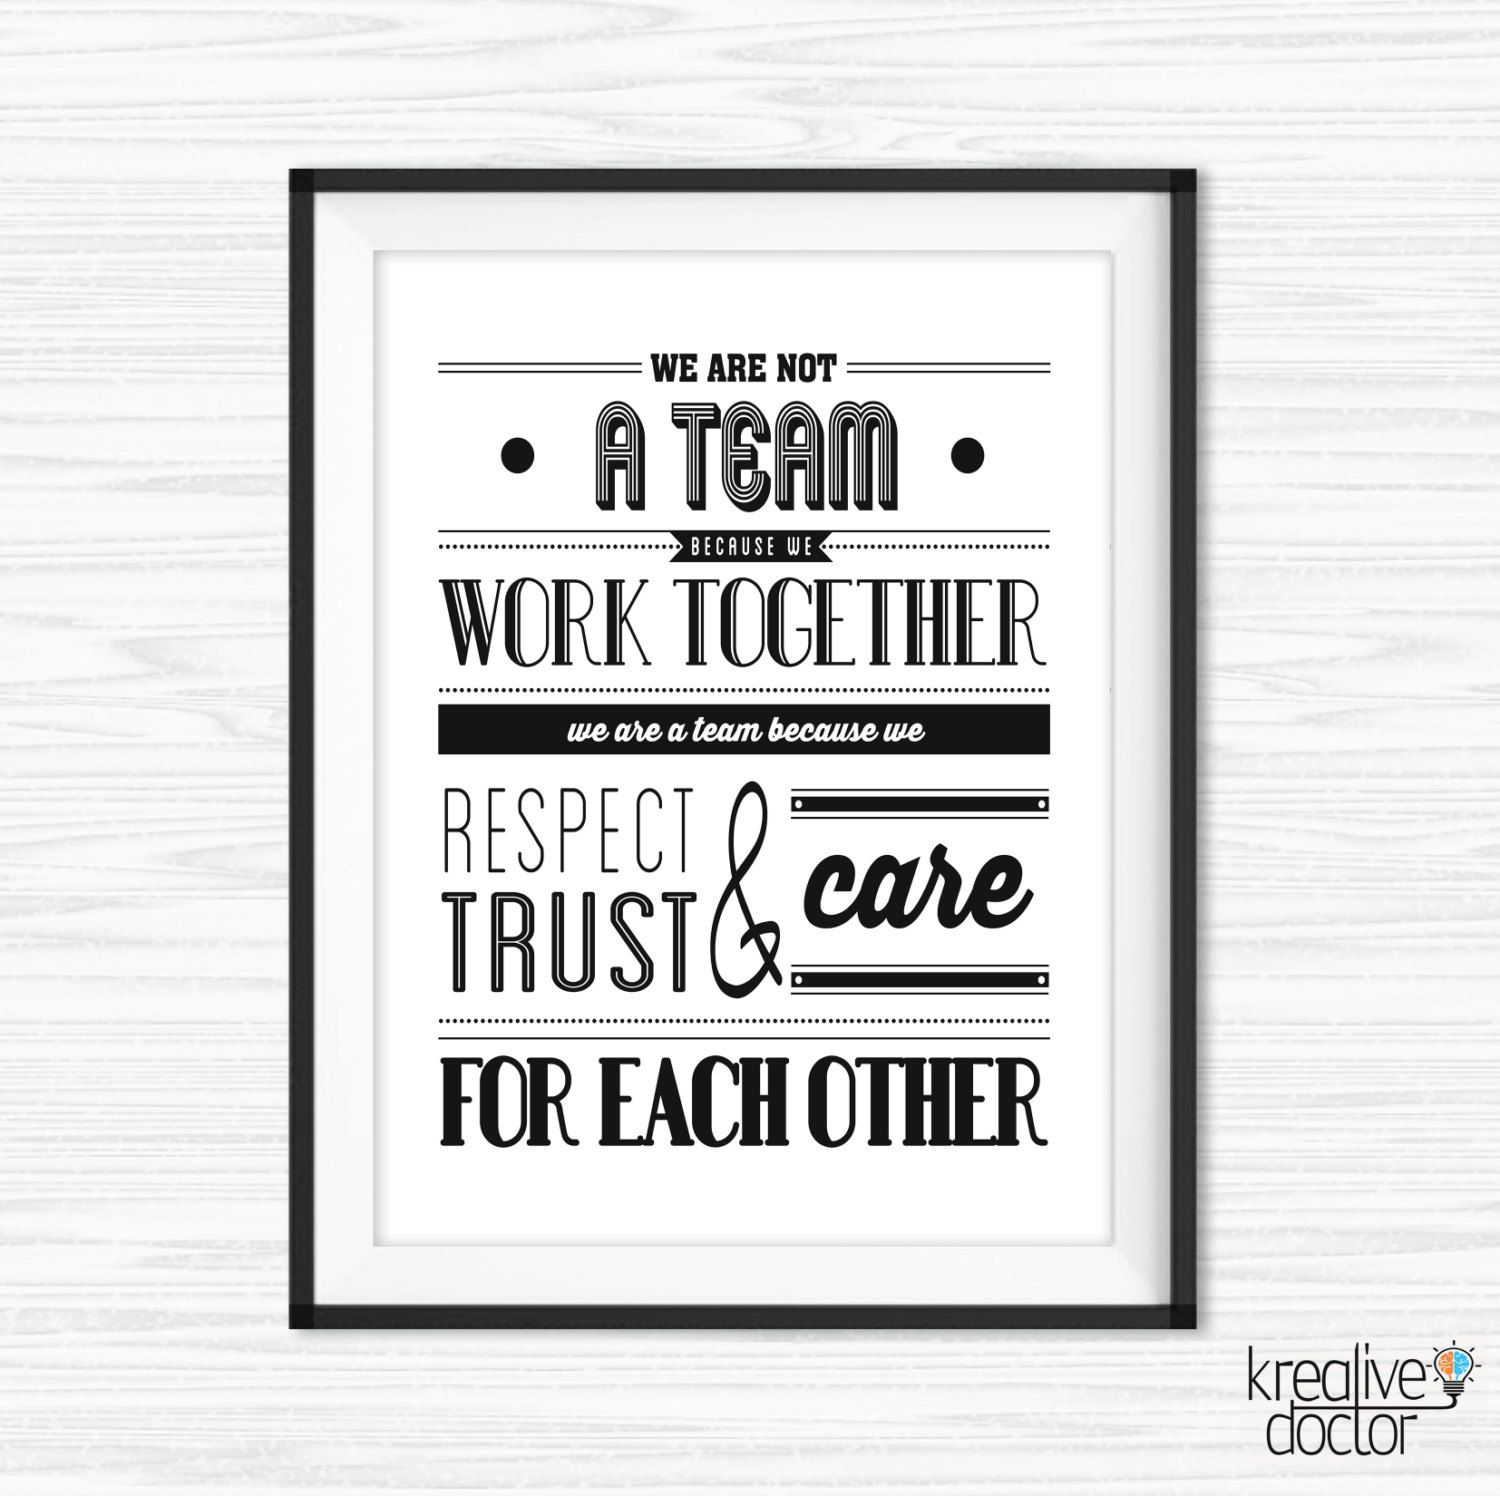 Teamwork Quotes For Office Wall Art Printable Success Quotes Motivational Wall Decor Inspirational Quote For Work Office Wall Quotes Teamwork Quotes Office Wall Art Dream Big Quotes